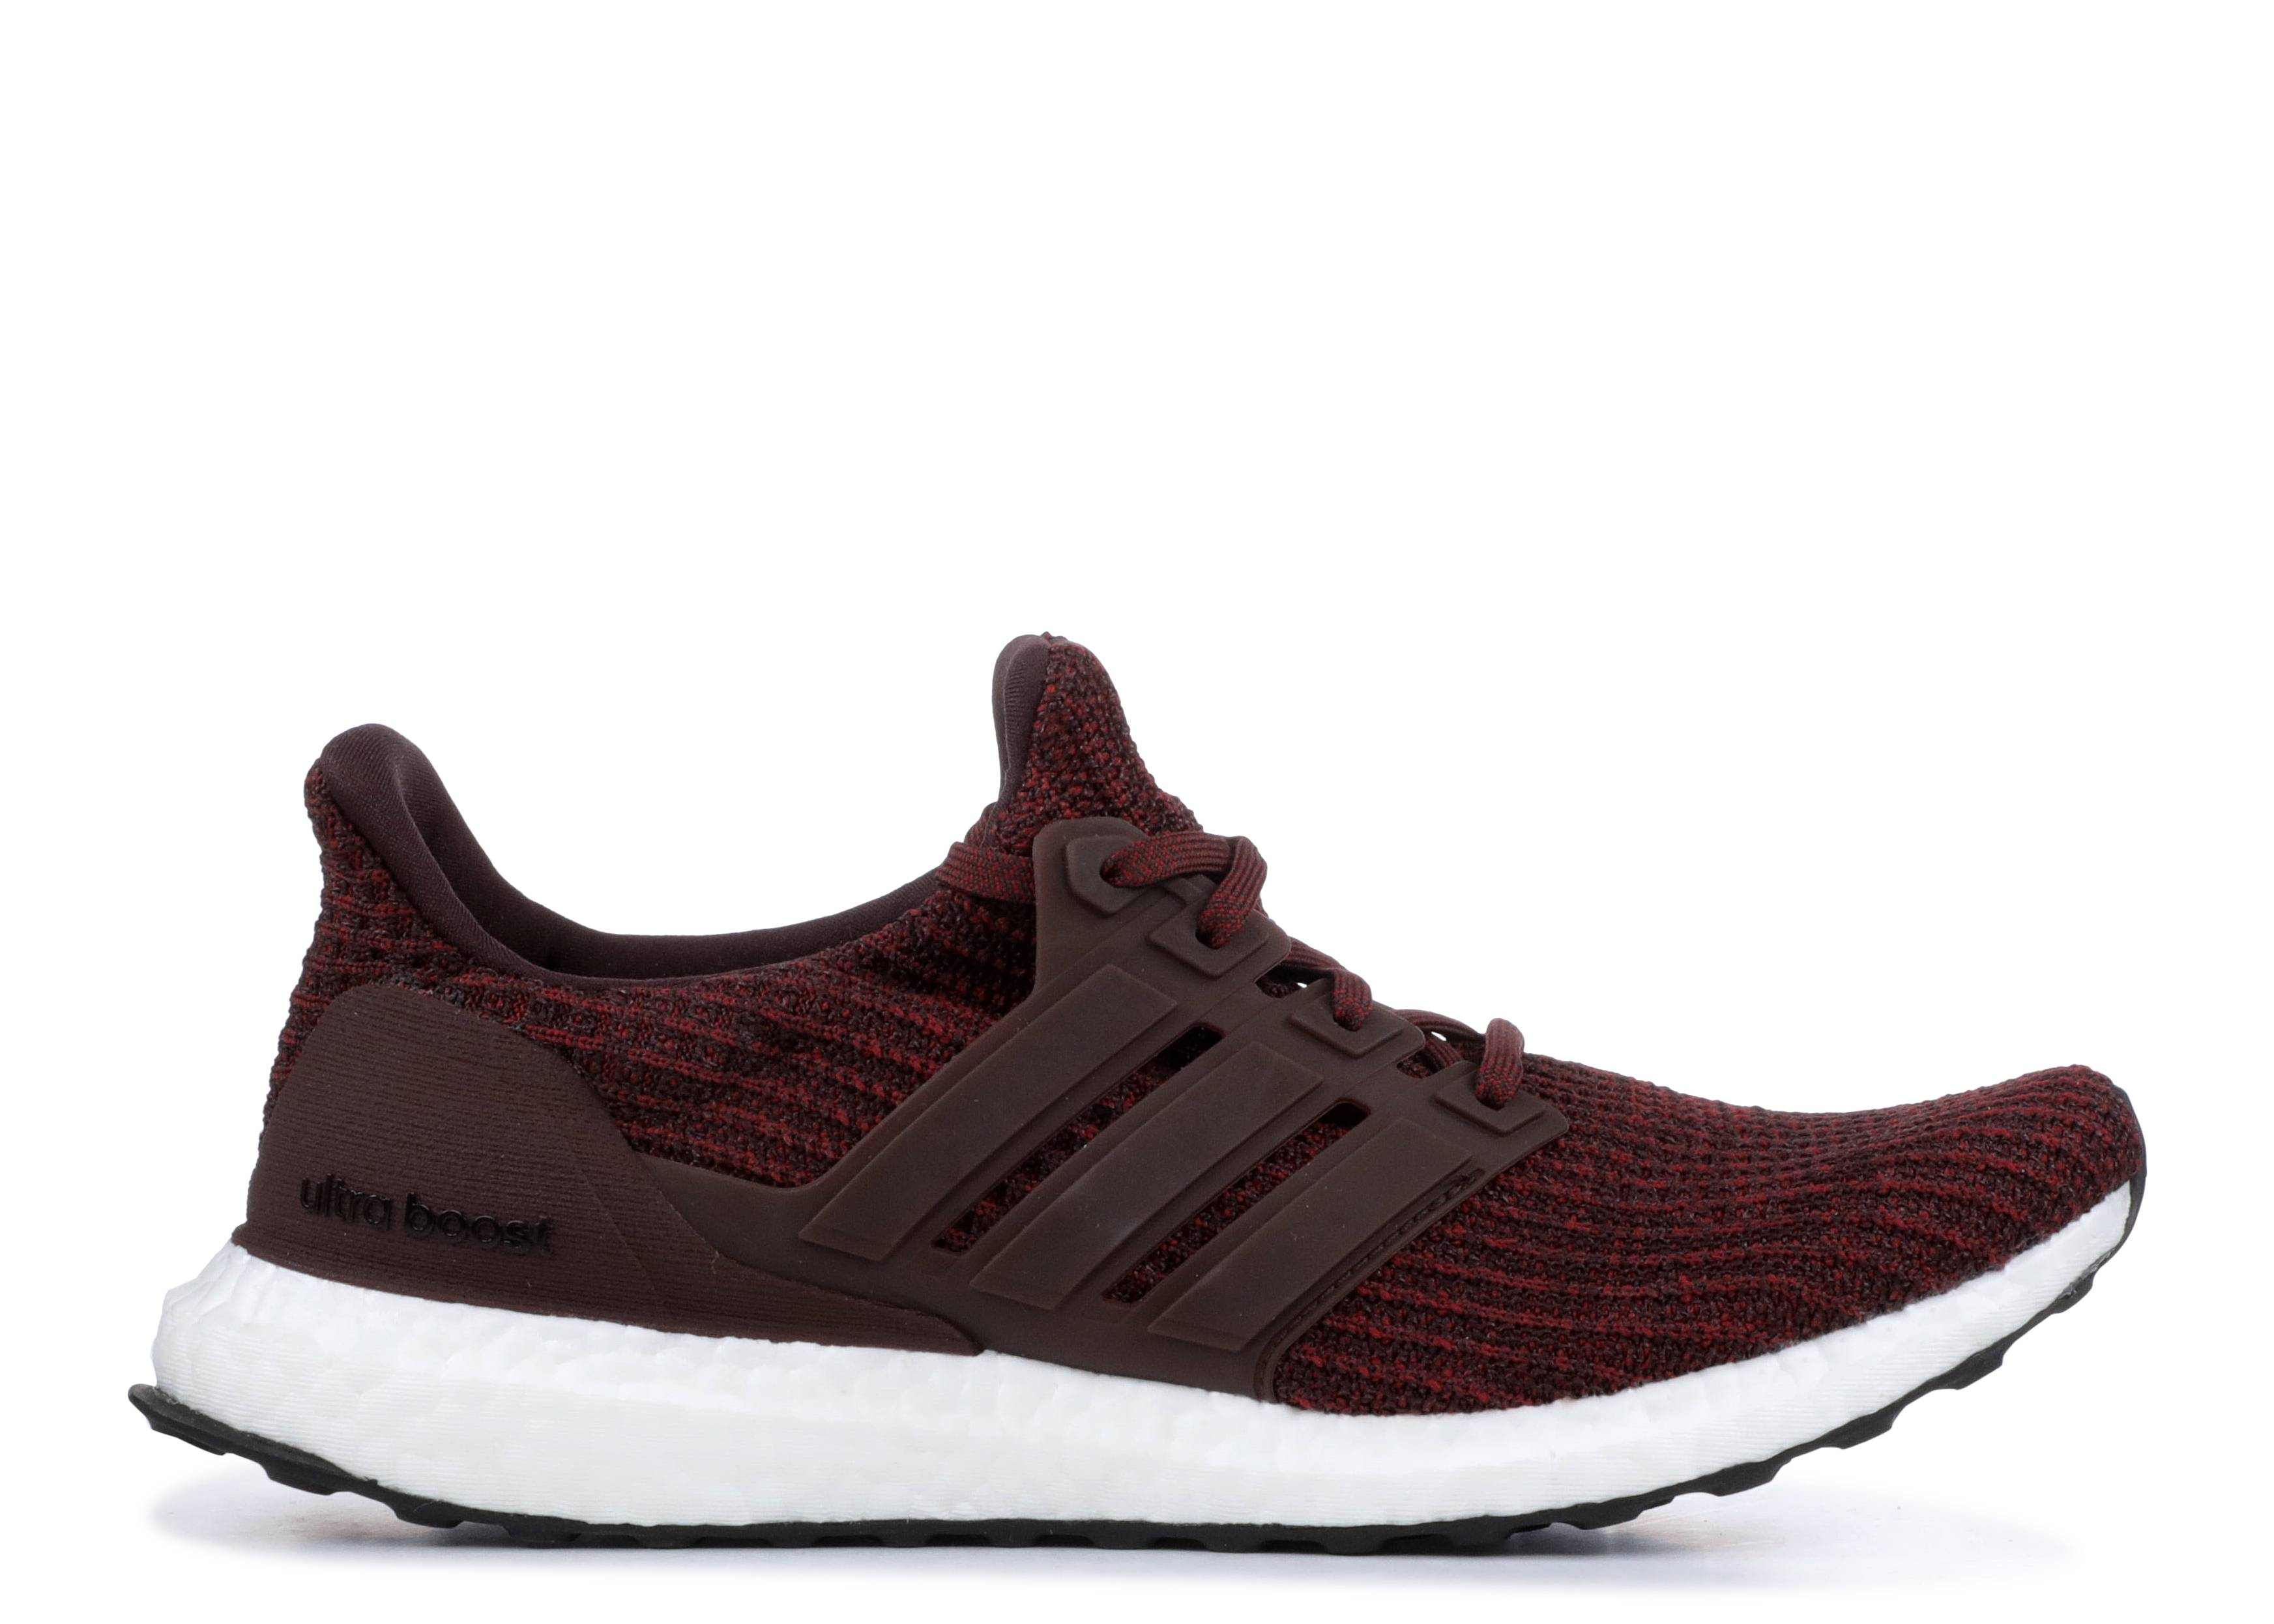 32d39130499554 Ultra Boost - Adidas - cm8115 - night red night red noble maroon ...